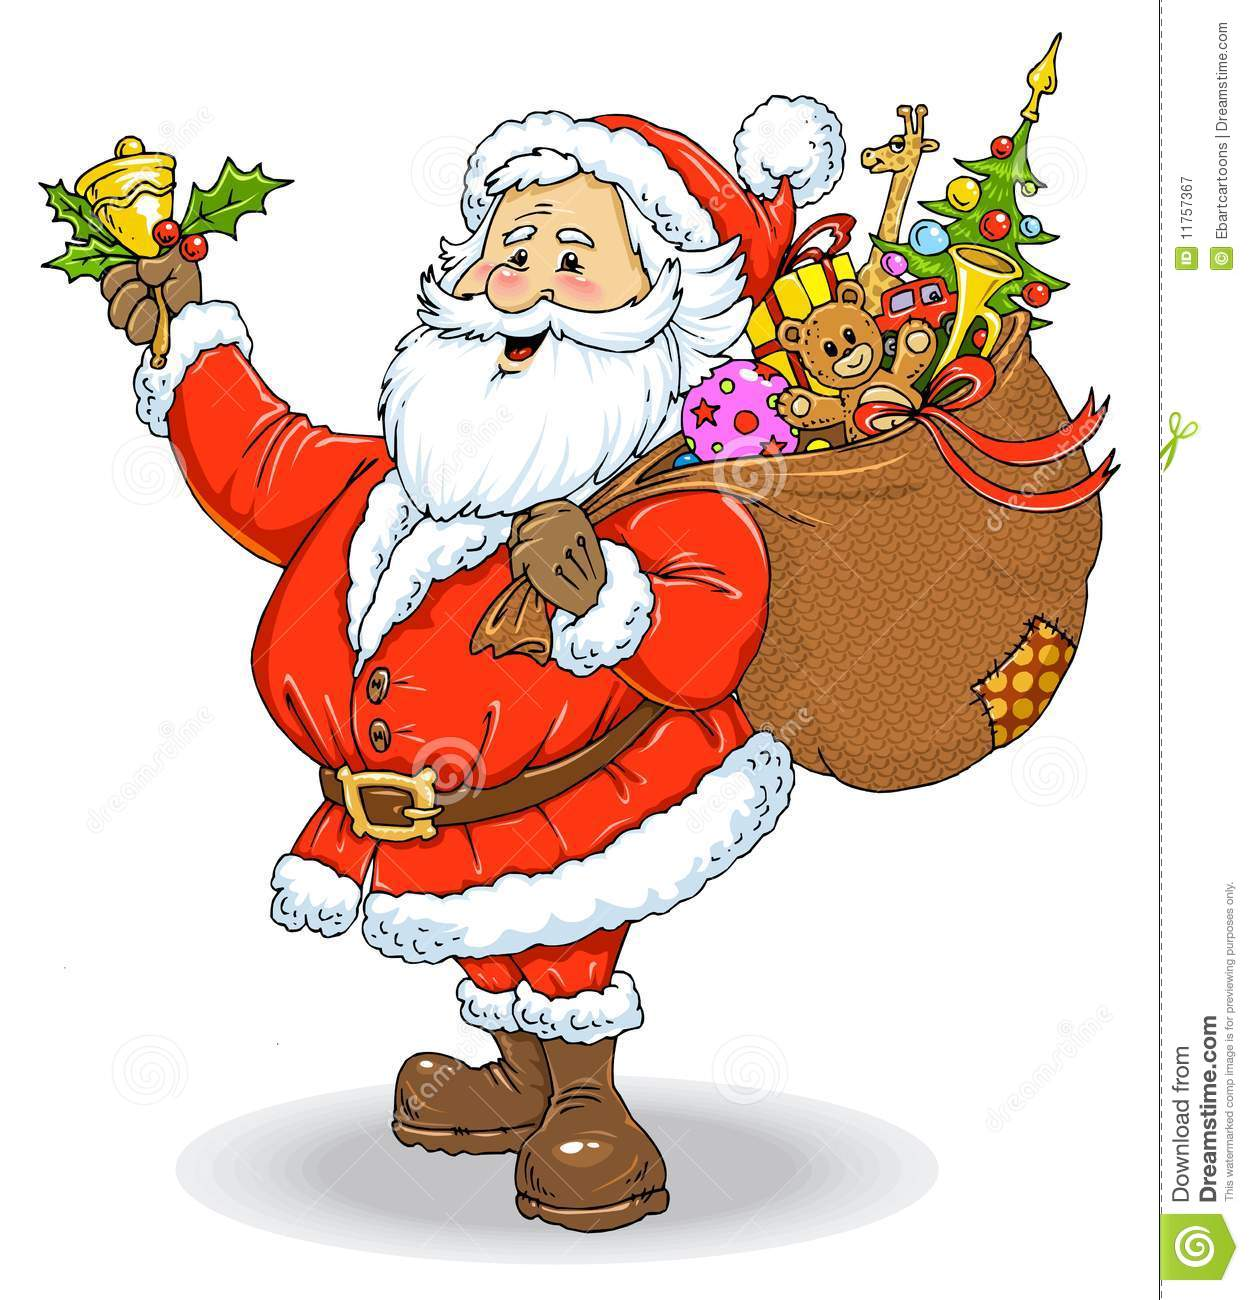 Santa Claus Color Illustration Royalty Free Stock